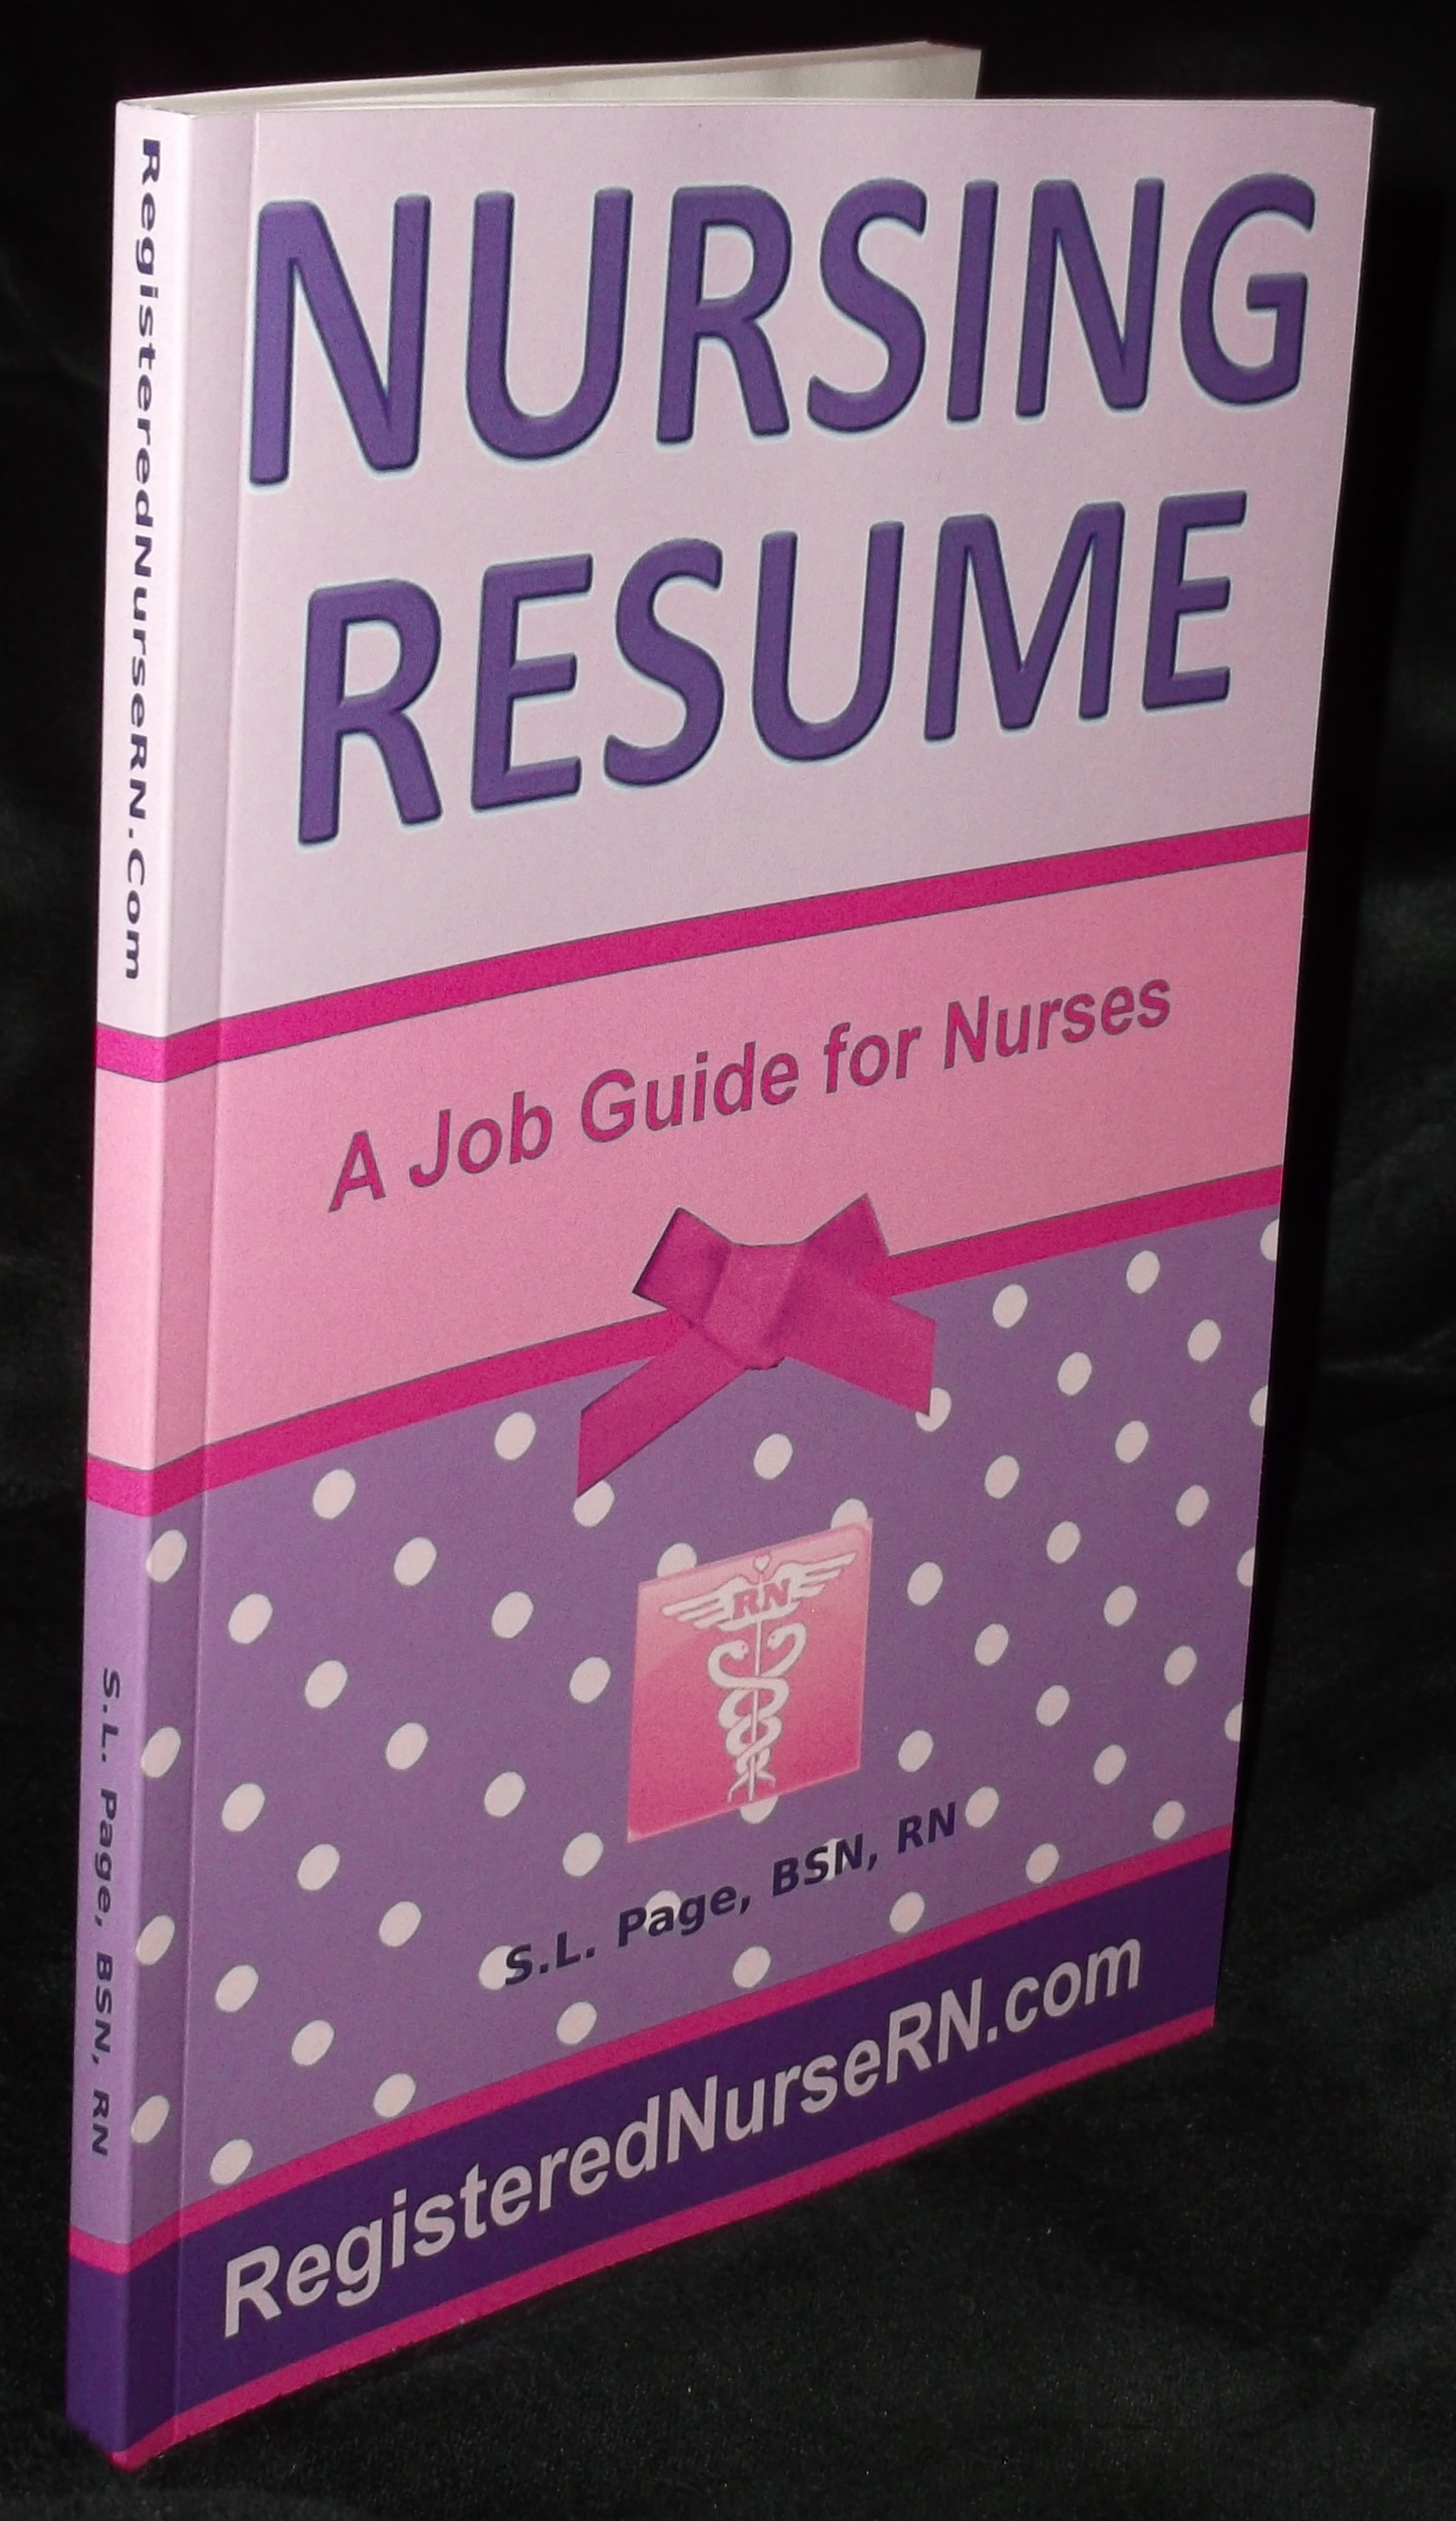 Nursing Resume Templates  Plus an eBook Job Guide for Nurses nursing resume book physical